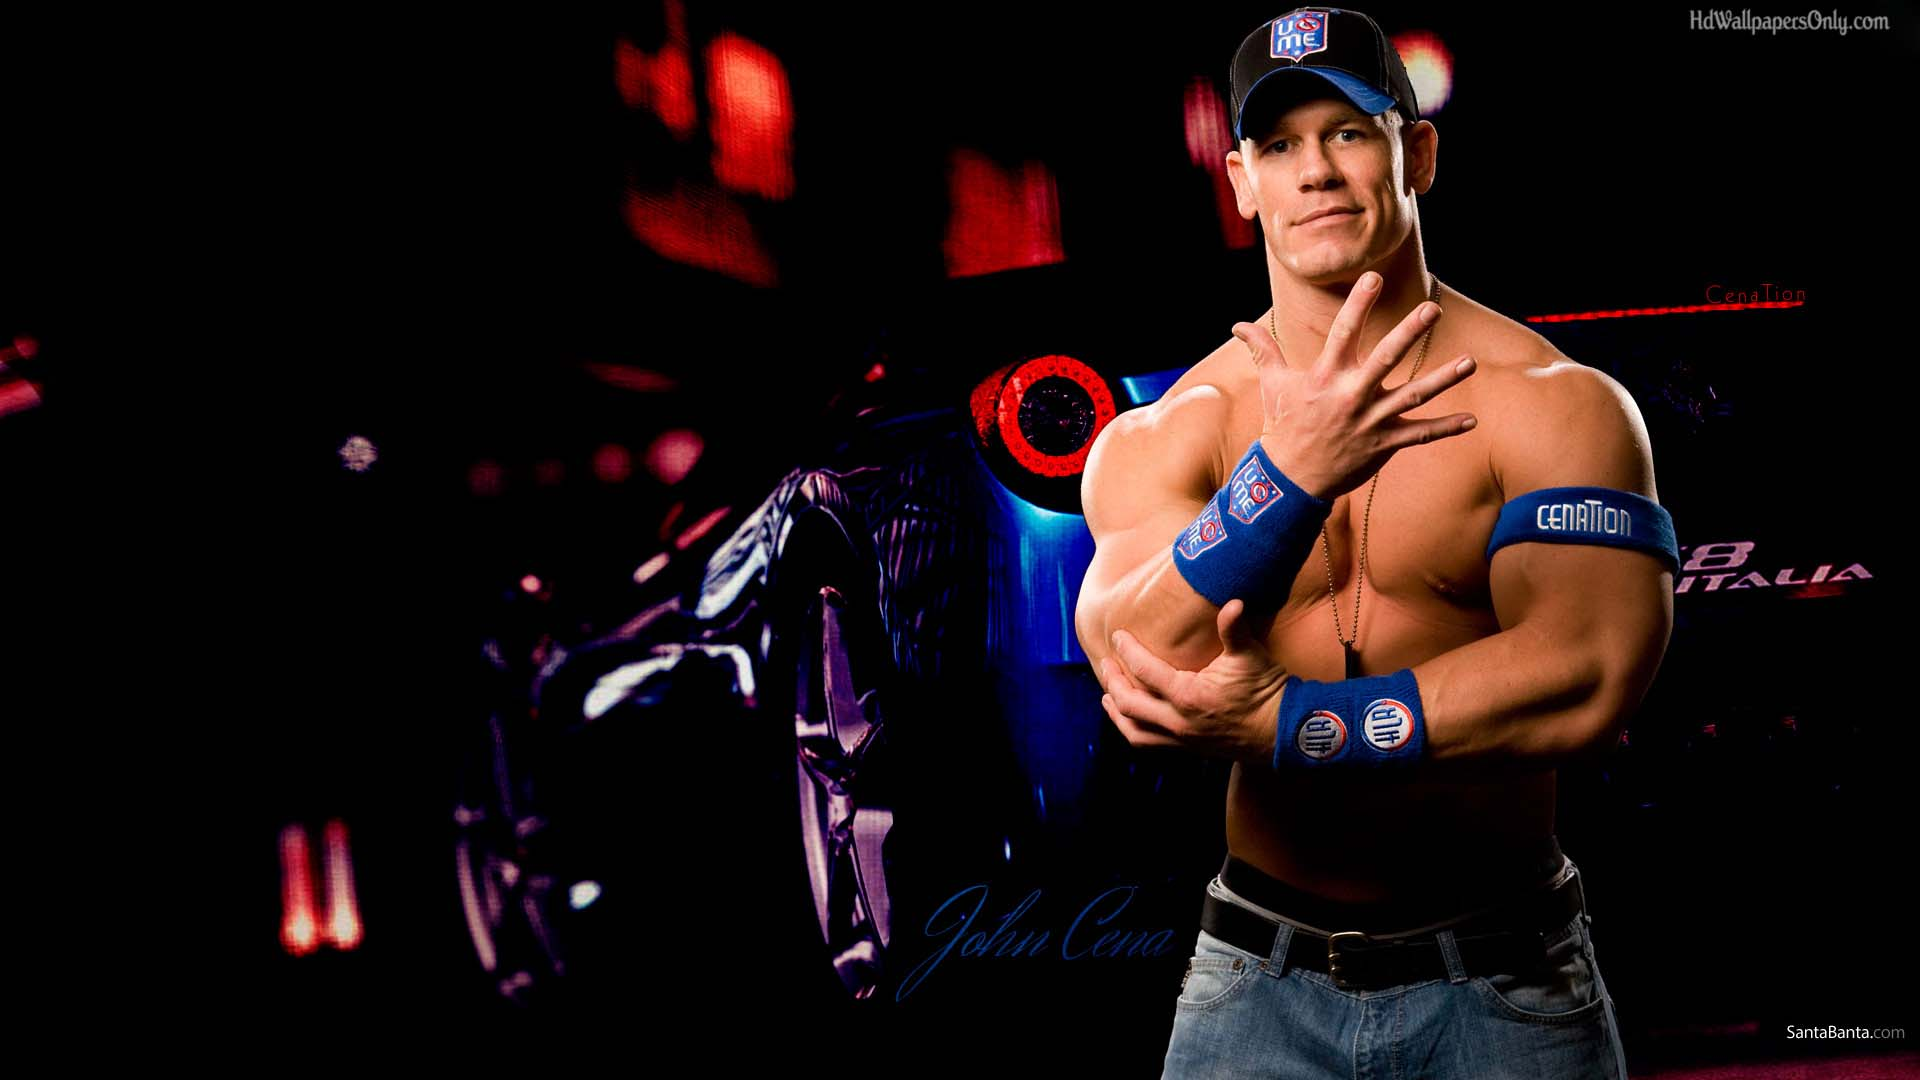 John-Cena-must-downloads-wallpaper-wp3407626